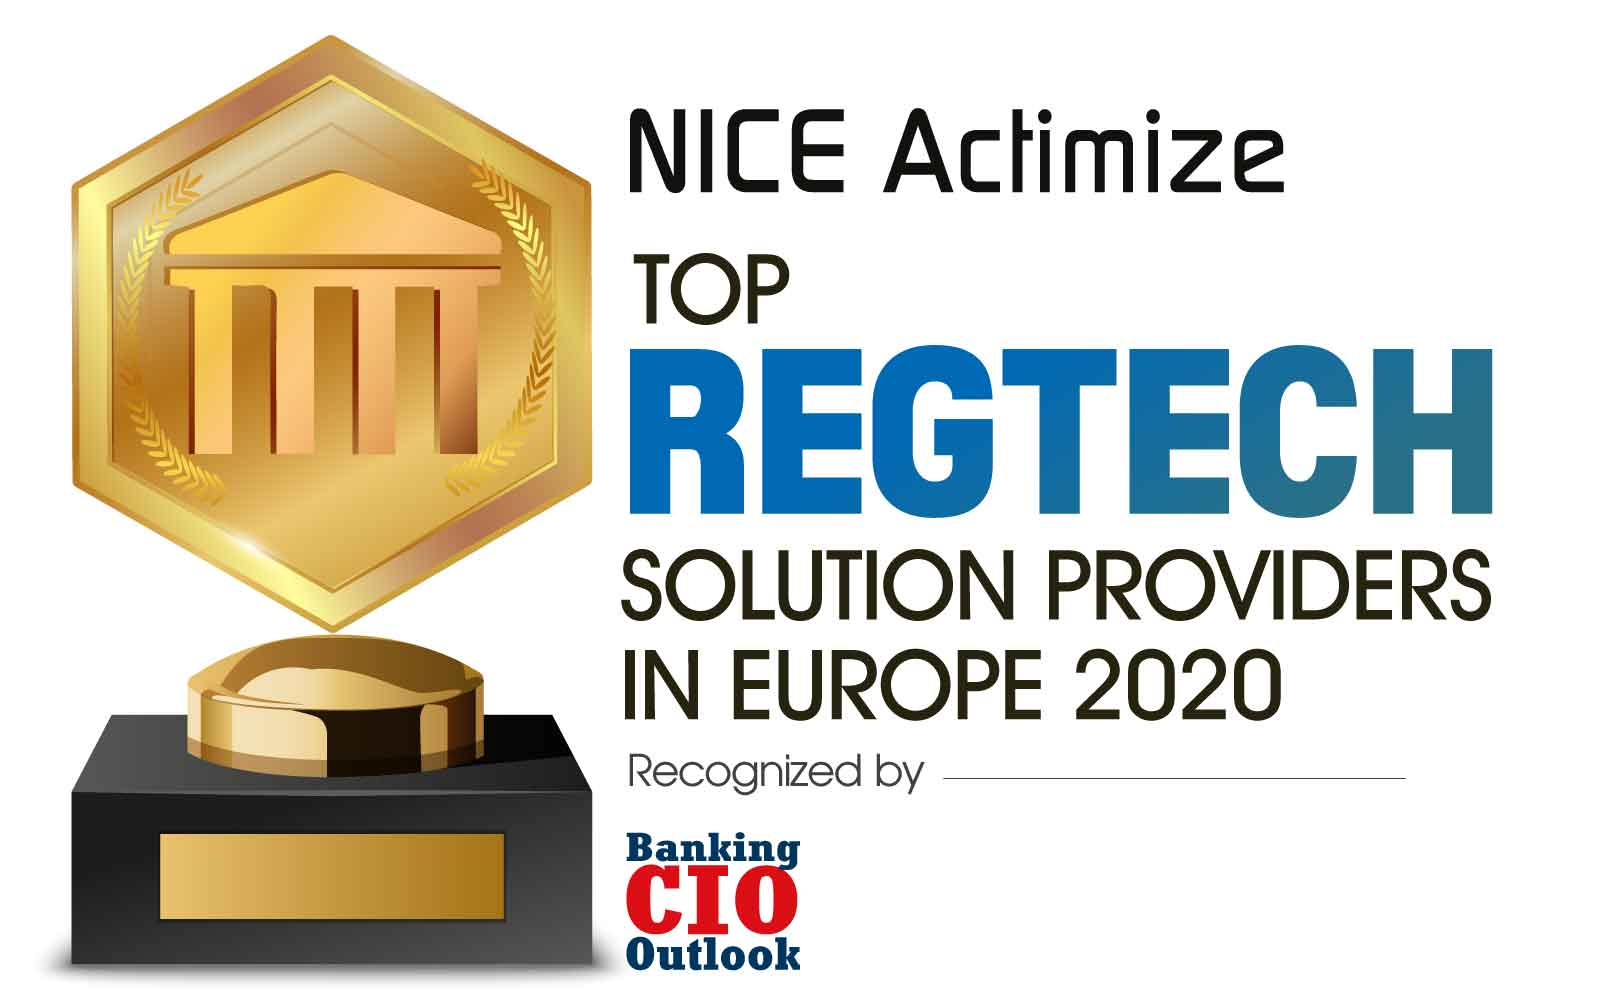 Top 10 Regtech Solution Providers in Europe - 2020